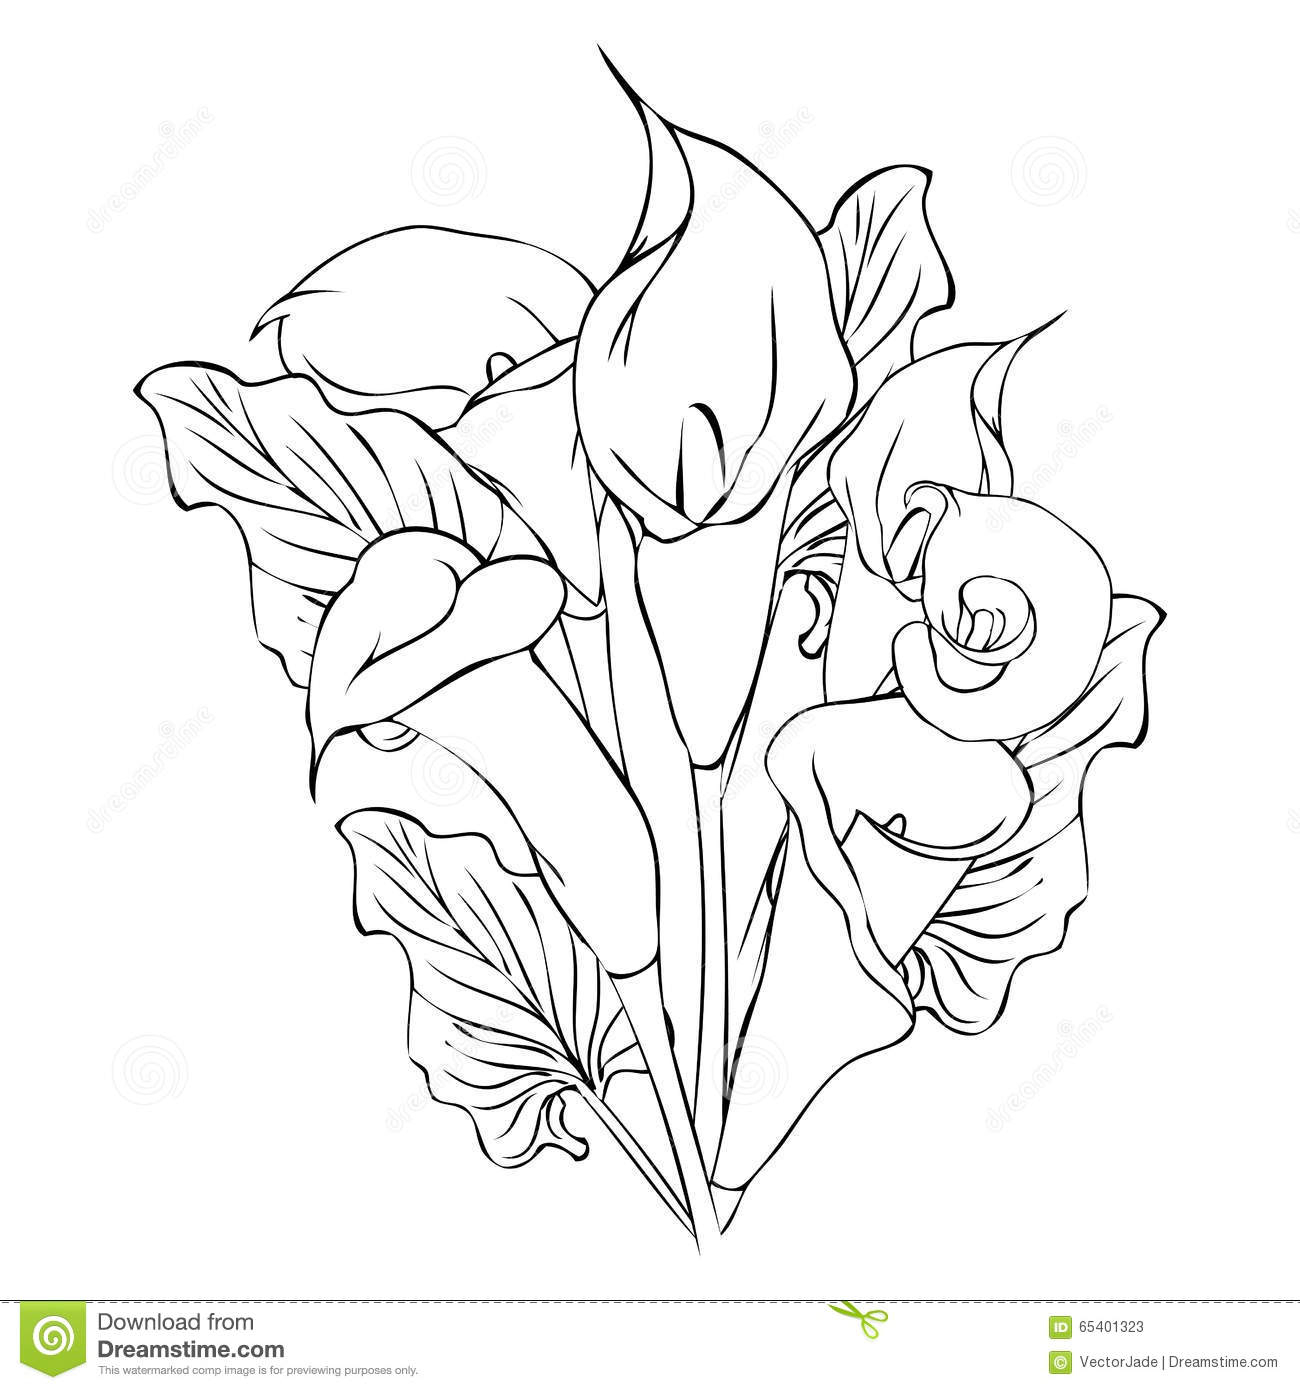 how to draw a calla lily flower how to draw flowers flower drawing tutorials sketches draw calla lily flower a how to